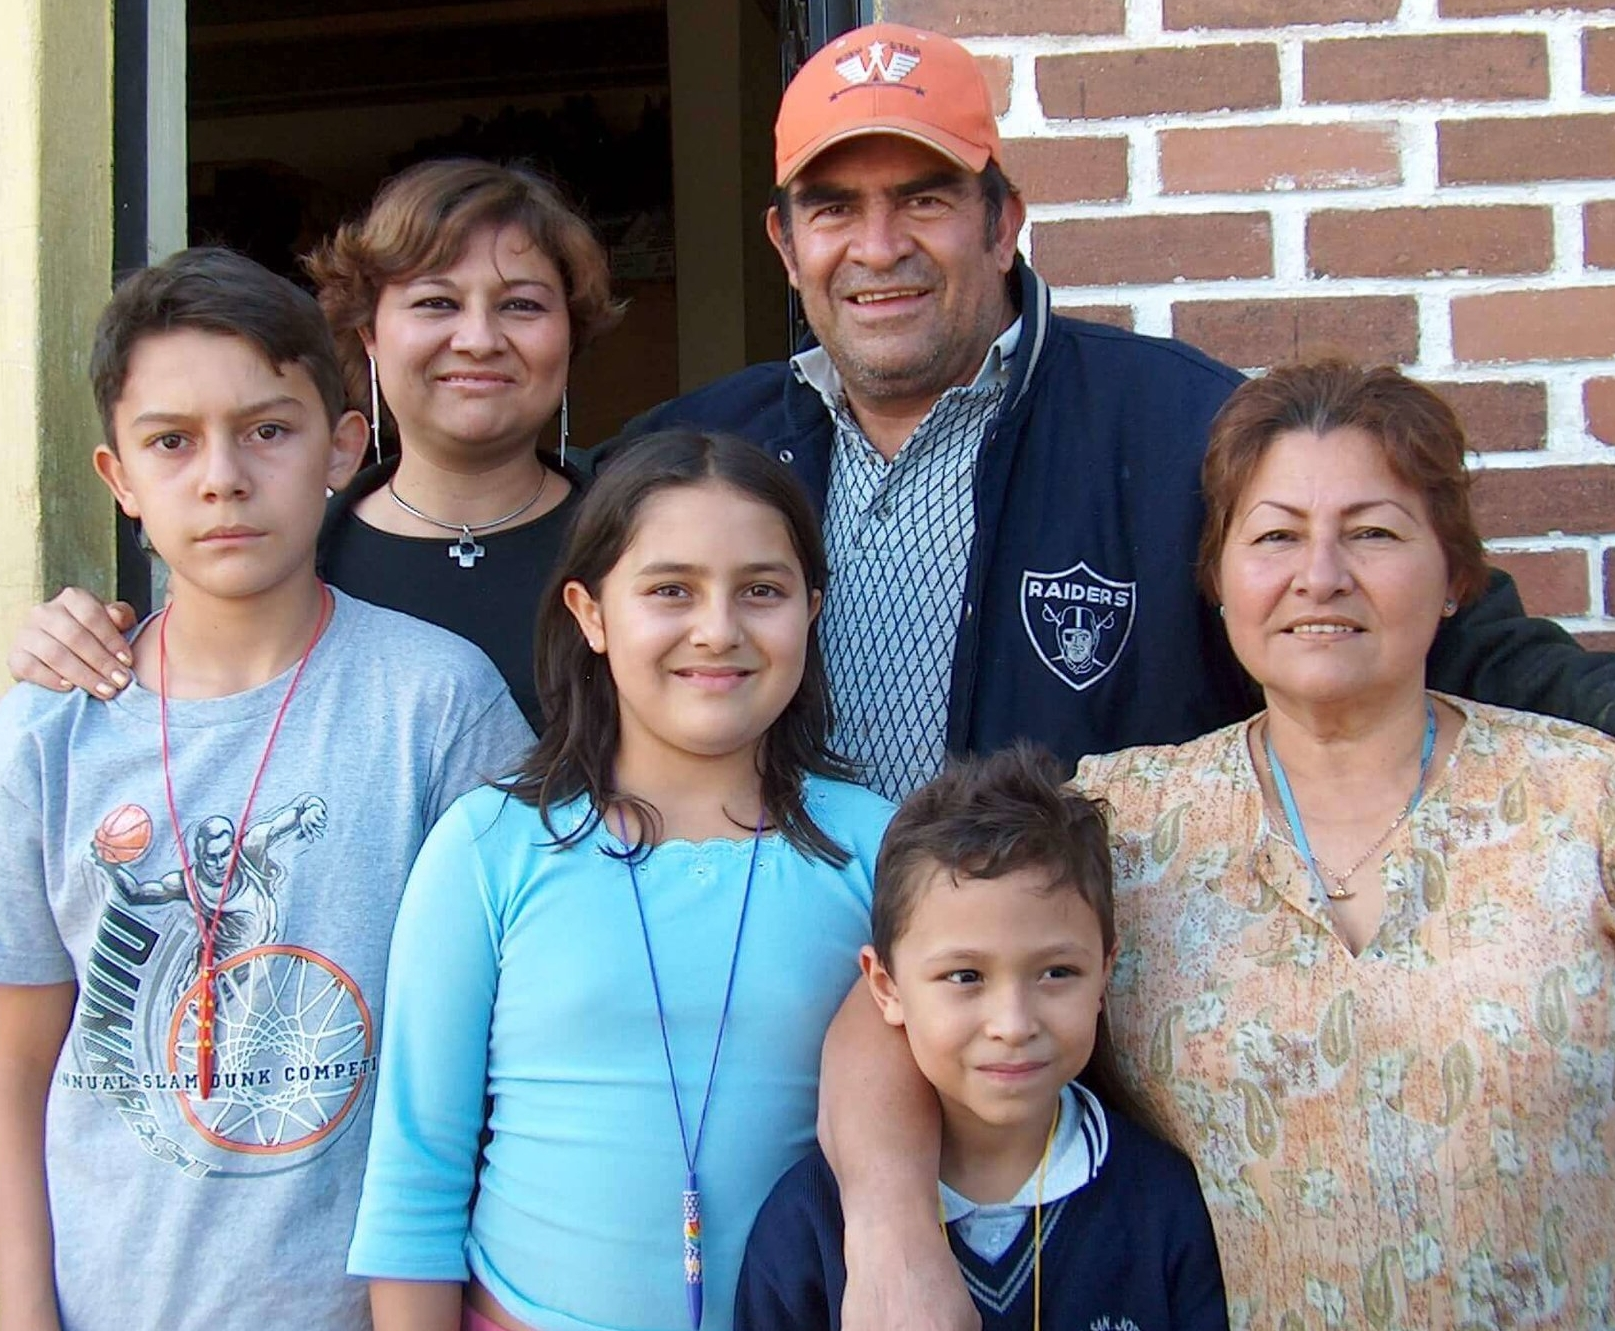 The Gonzalez family would appreciate your prayers for Leonel. He is on the far left, his mother, Myrna, his sister Dulce, Cesar, Elba, and Leonel's cousin Josue. This picture was taken several years ago, before Dulce herself died of complications related to an apendectomy.